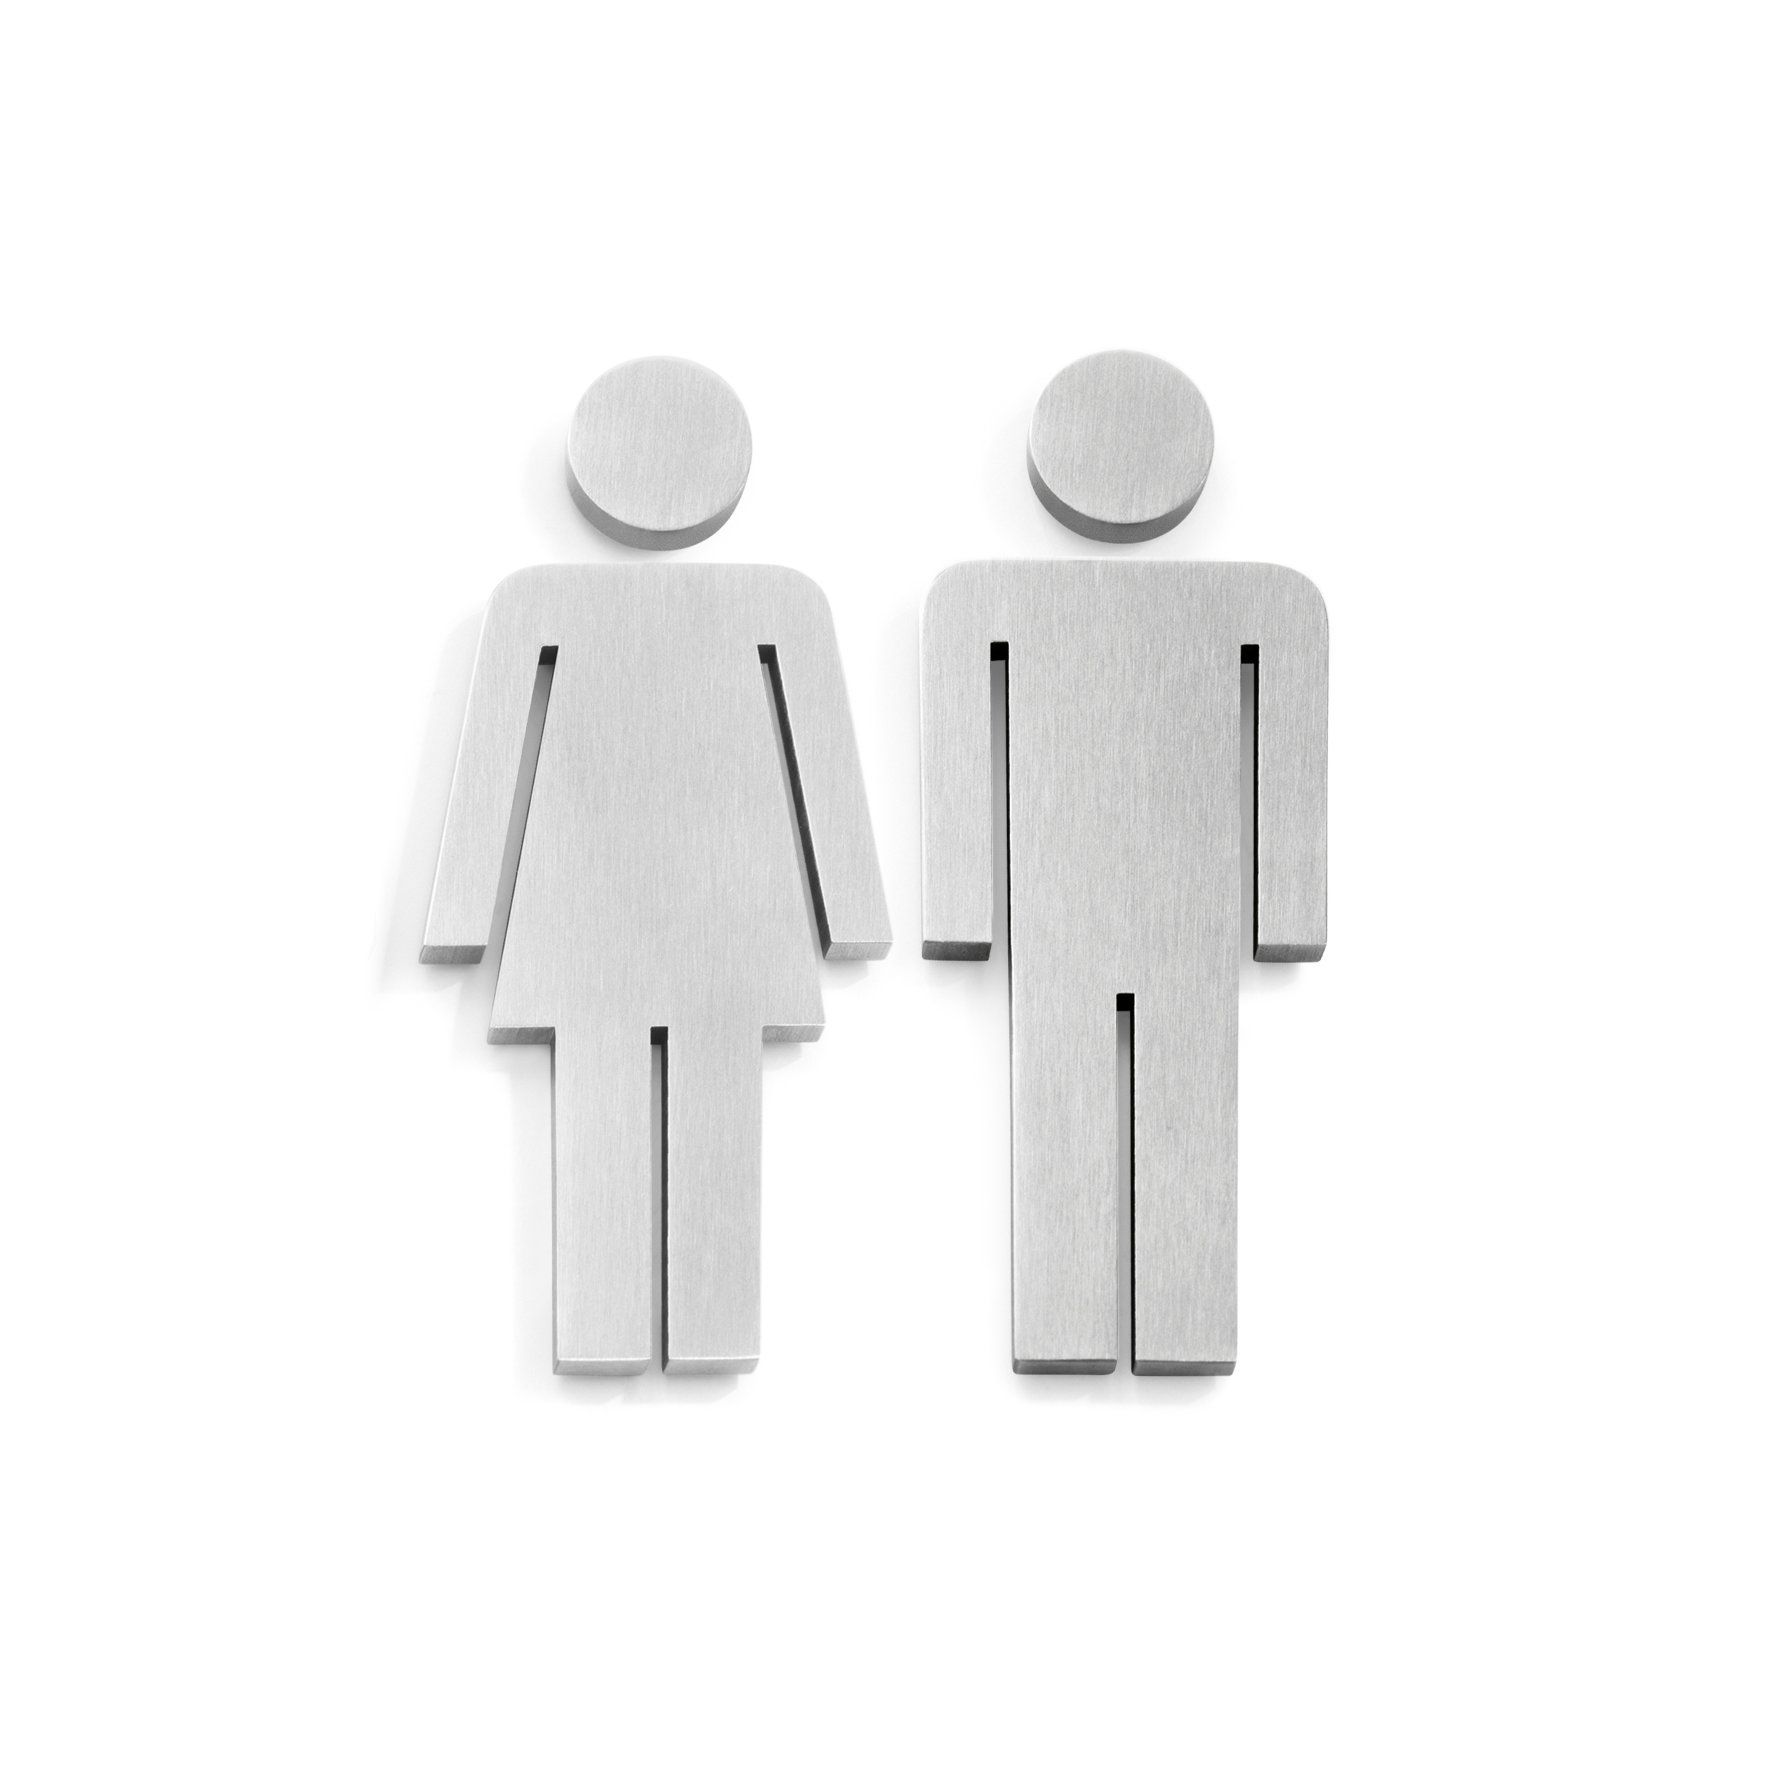 Indici Door Symbol Woman and Man Set  sc 1 st  Pinterest & Indici Door Symbol Woman and Man Set | TDM Downtown | Pinterest ...